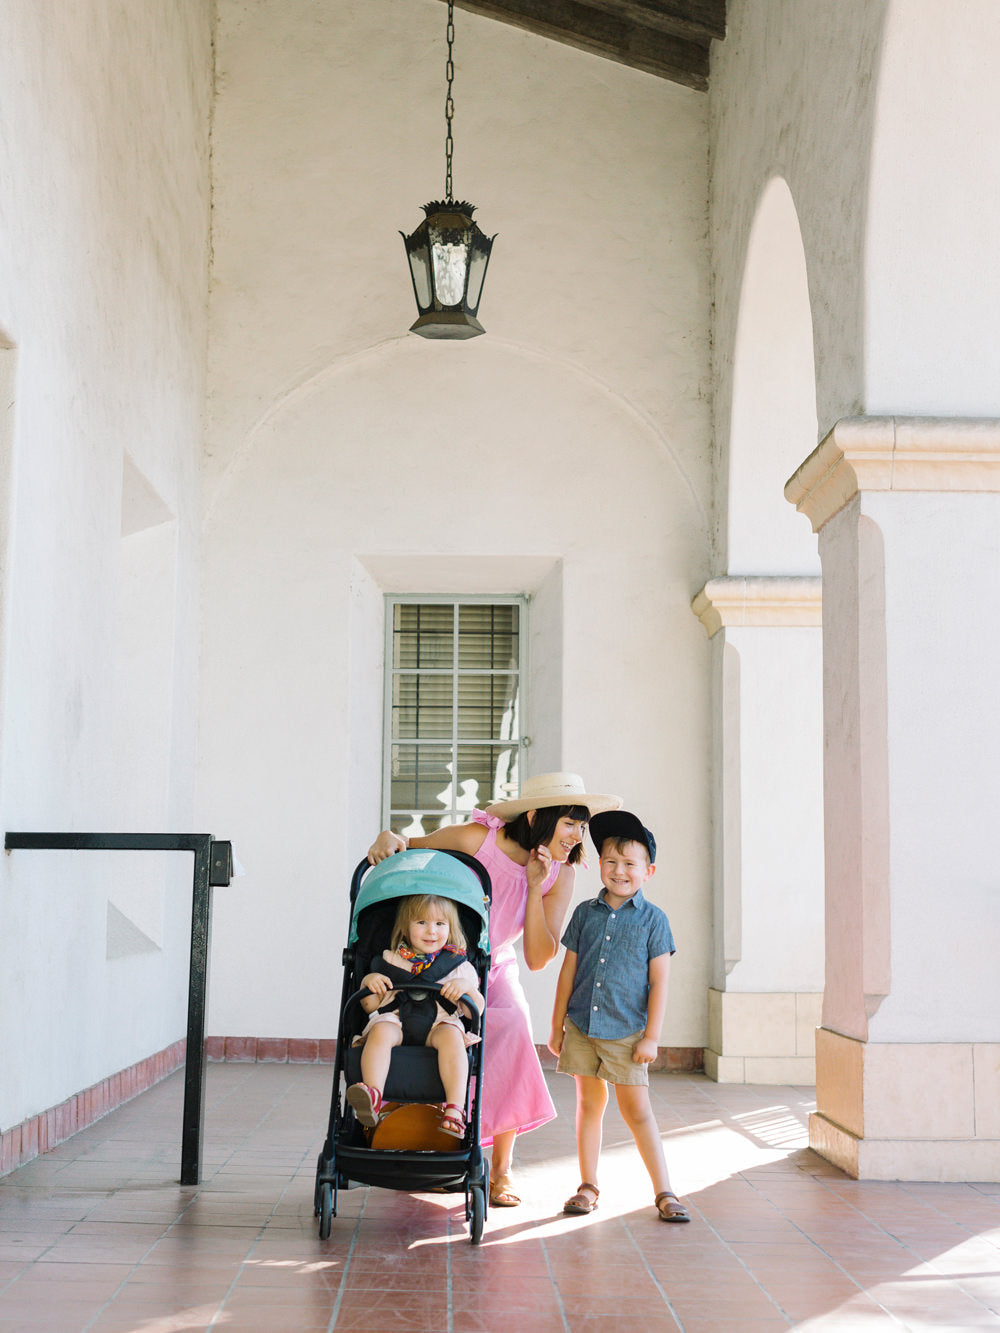 California Spanish architecture surrounds Erin and her family as they take a walk with the Peli stroller.